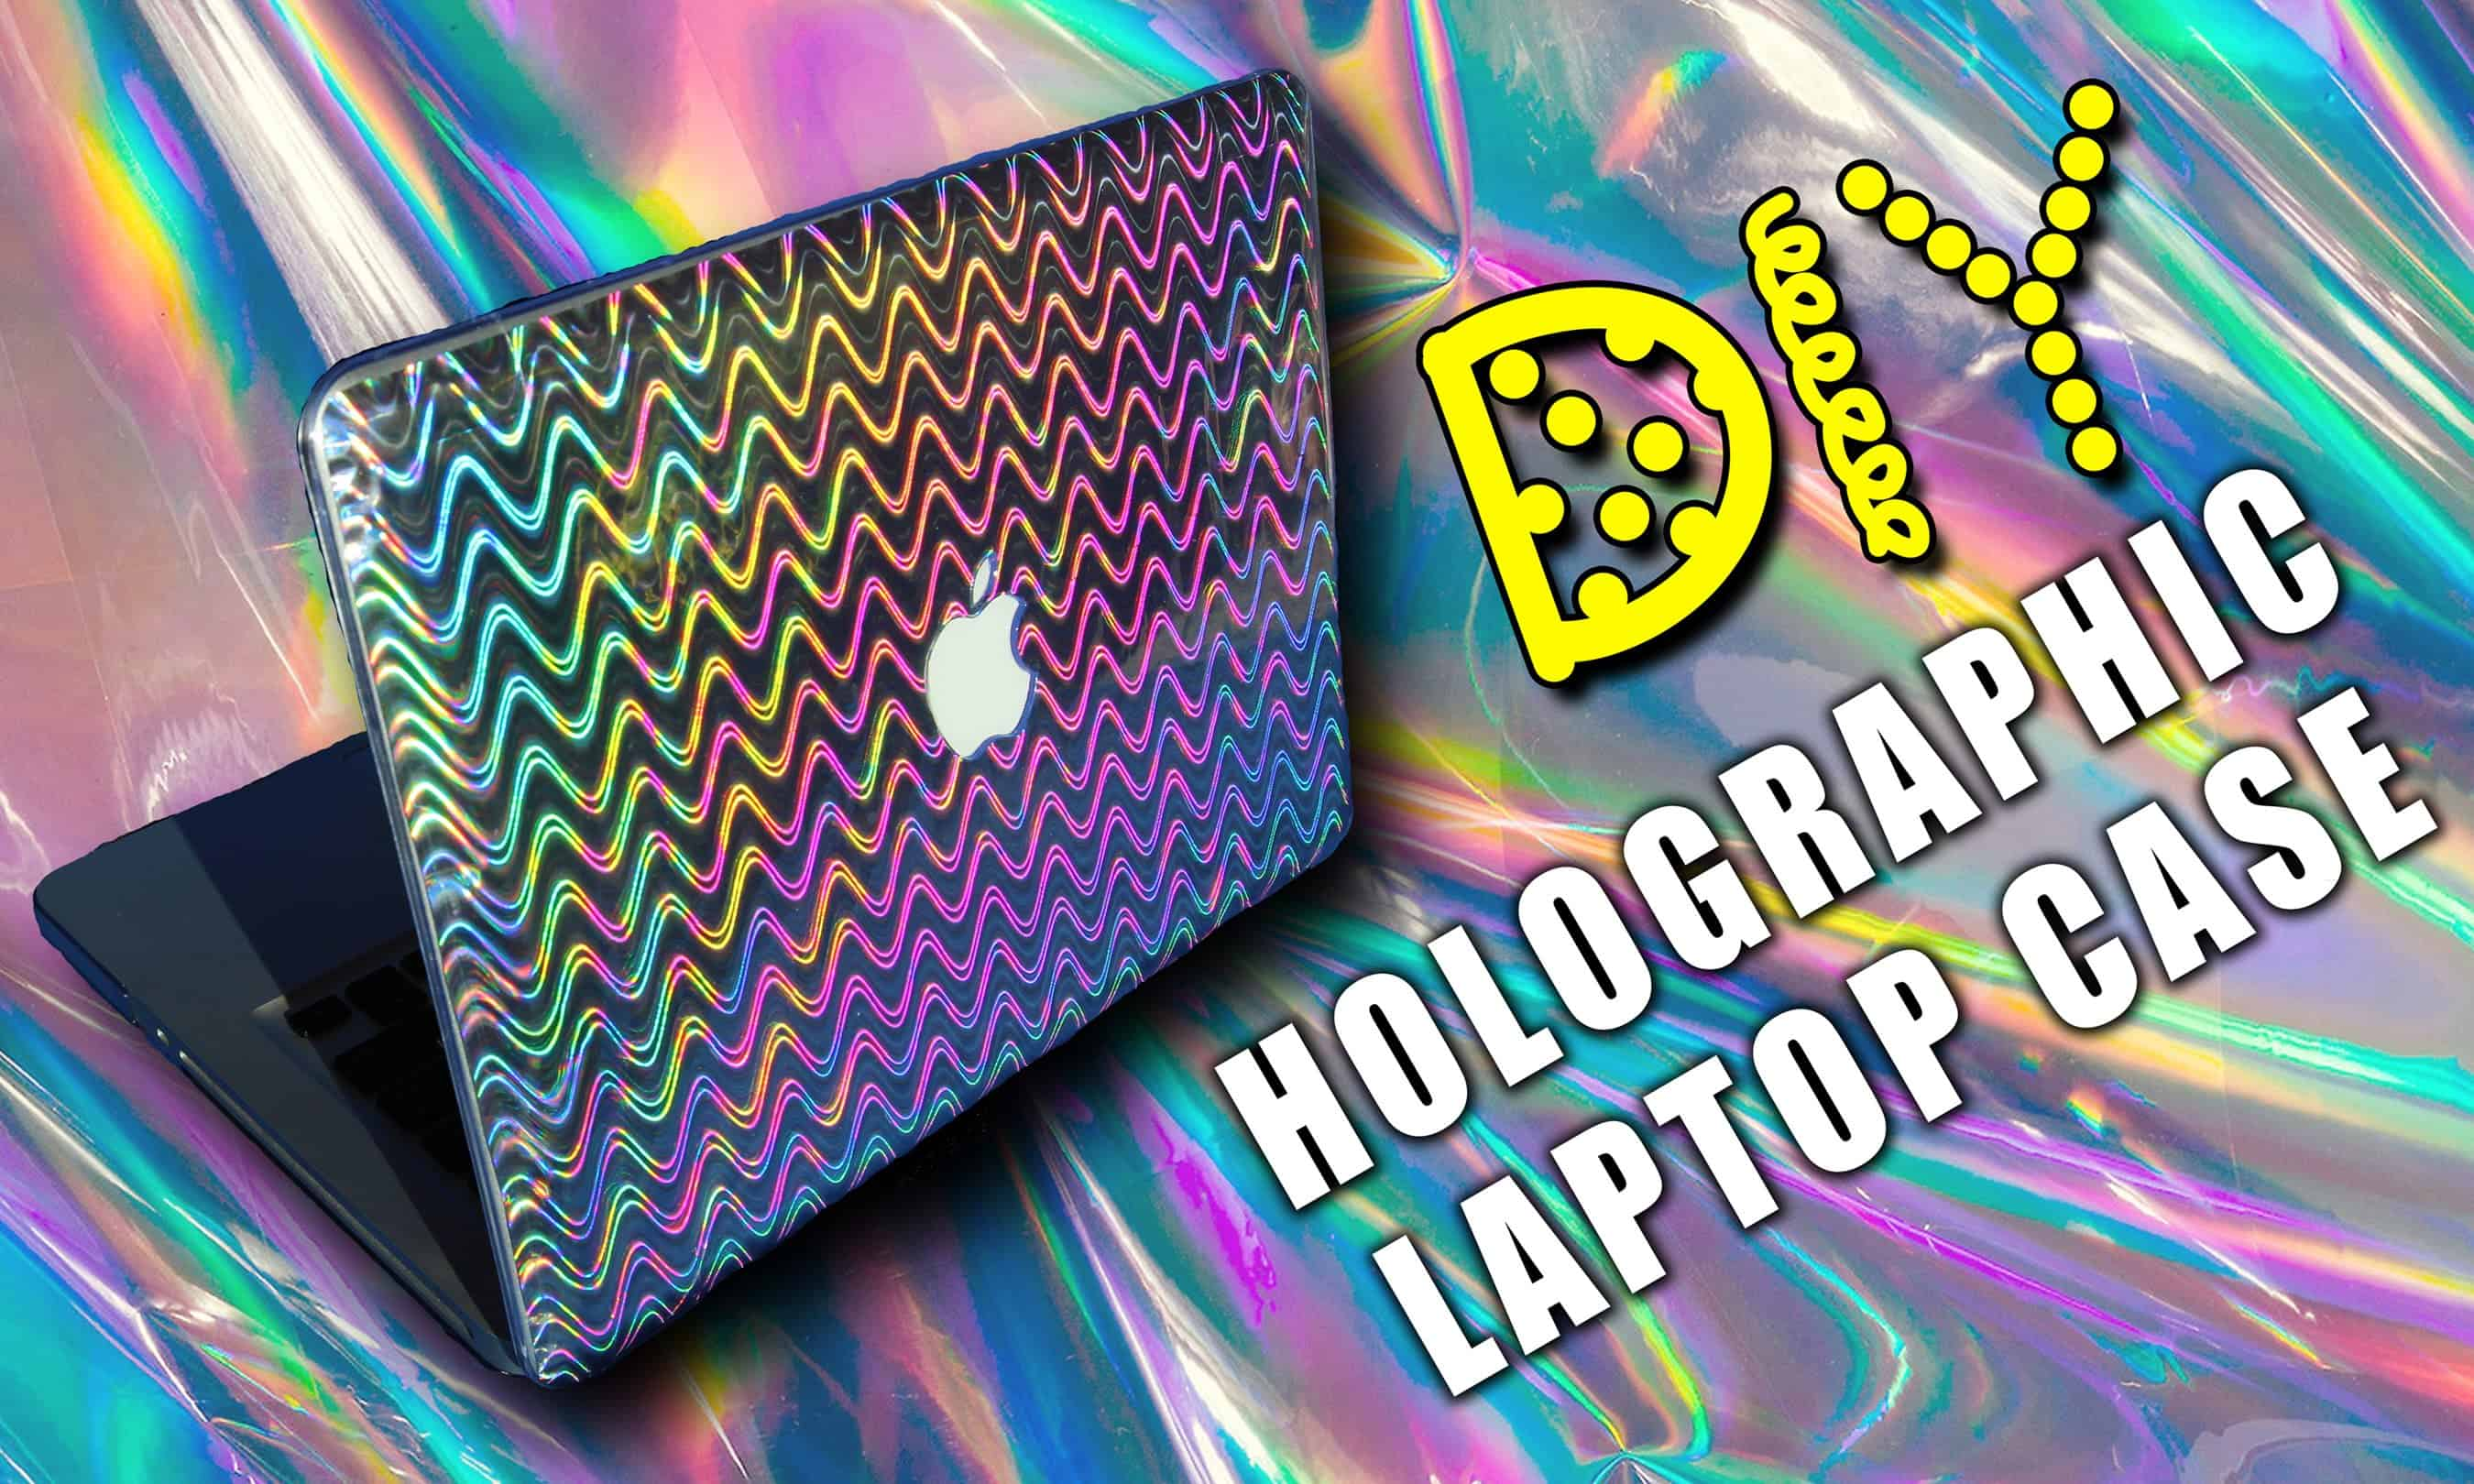 Holographic adhesive vinyl laptop case